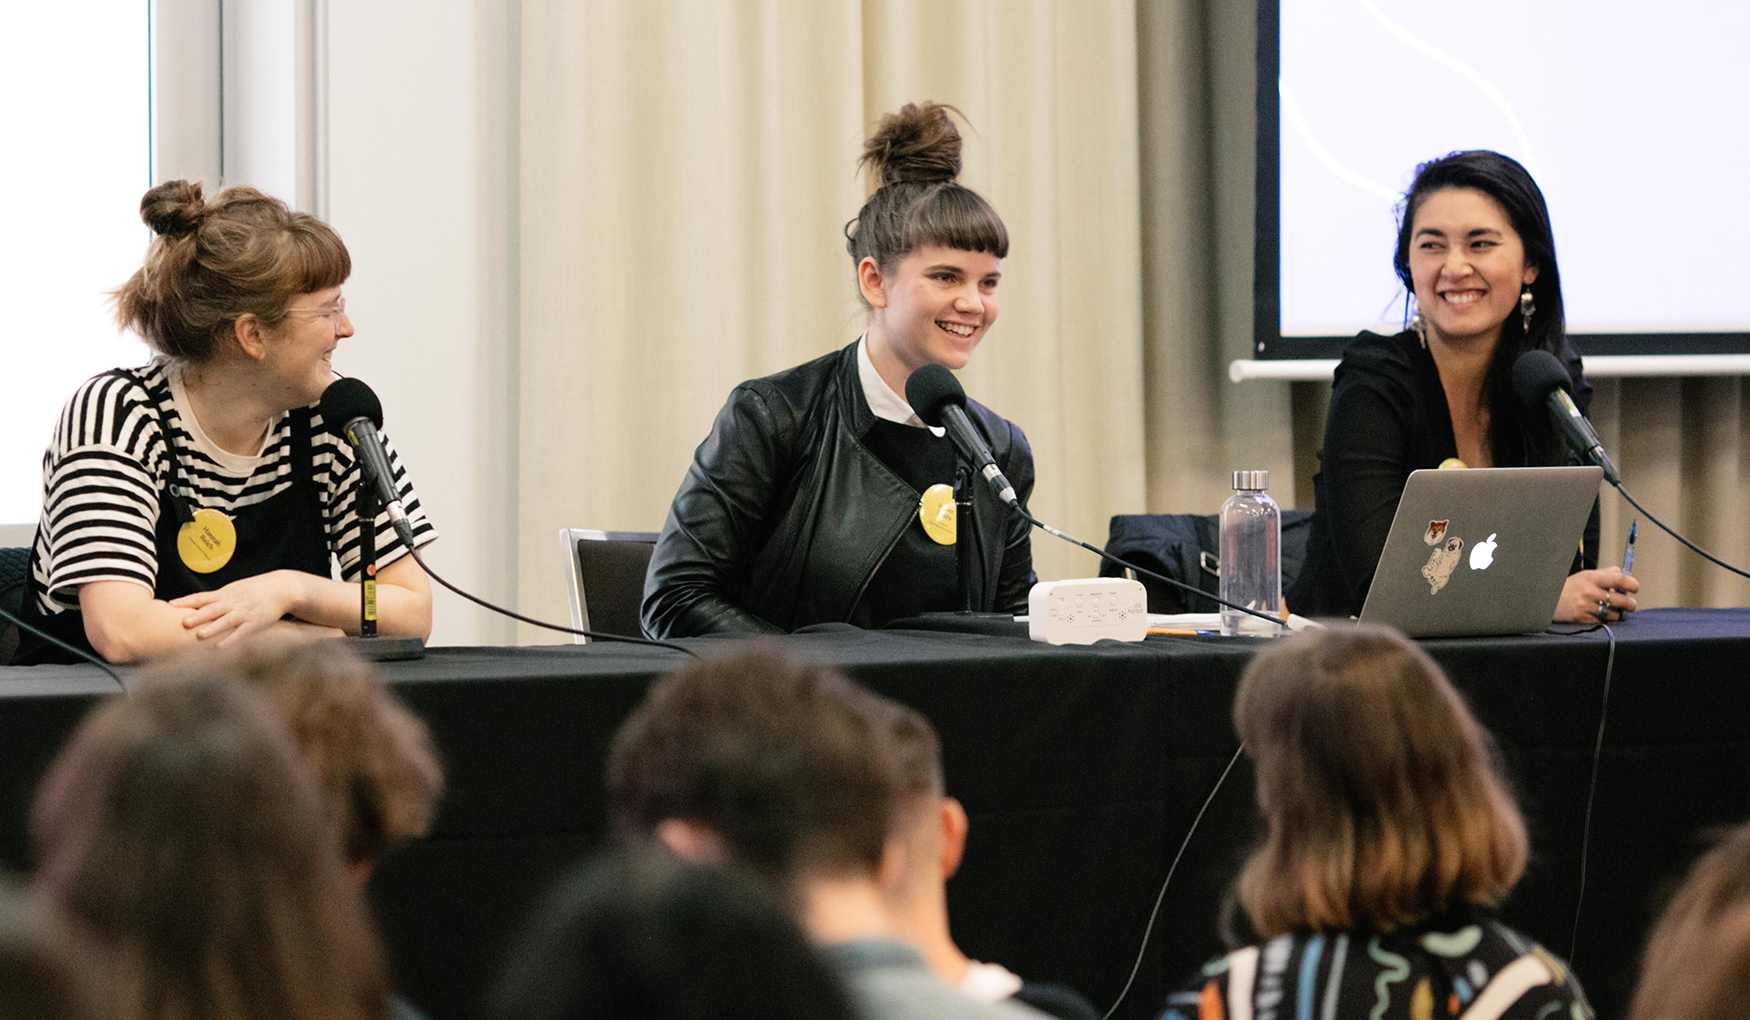 Three women on a panel about podcasts